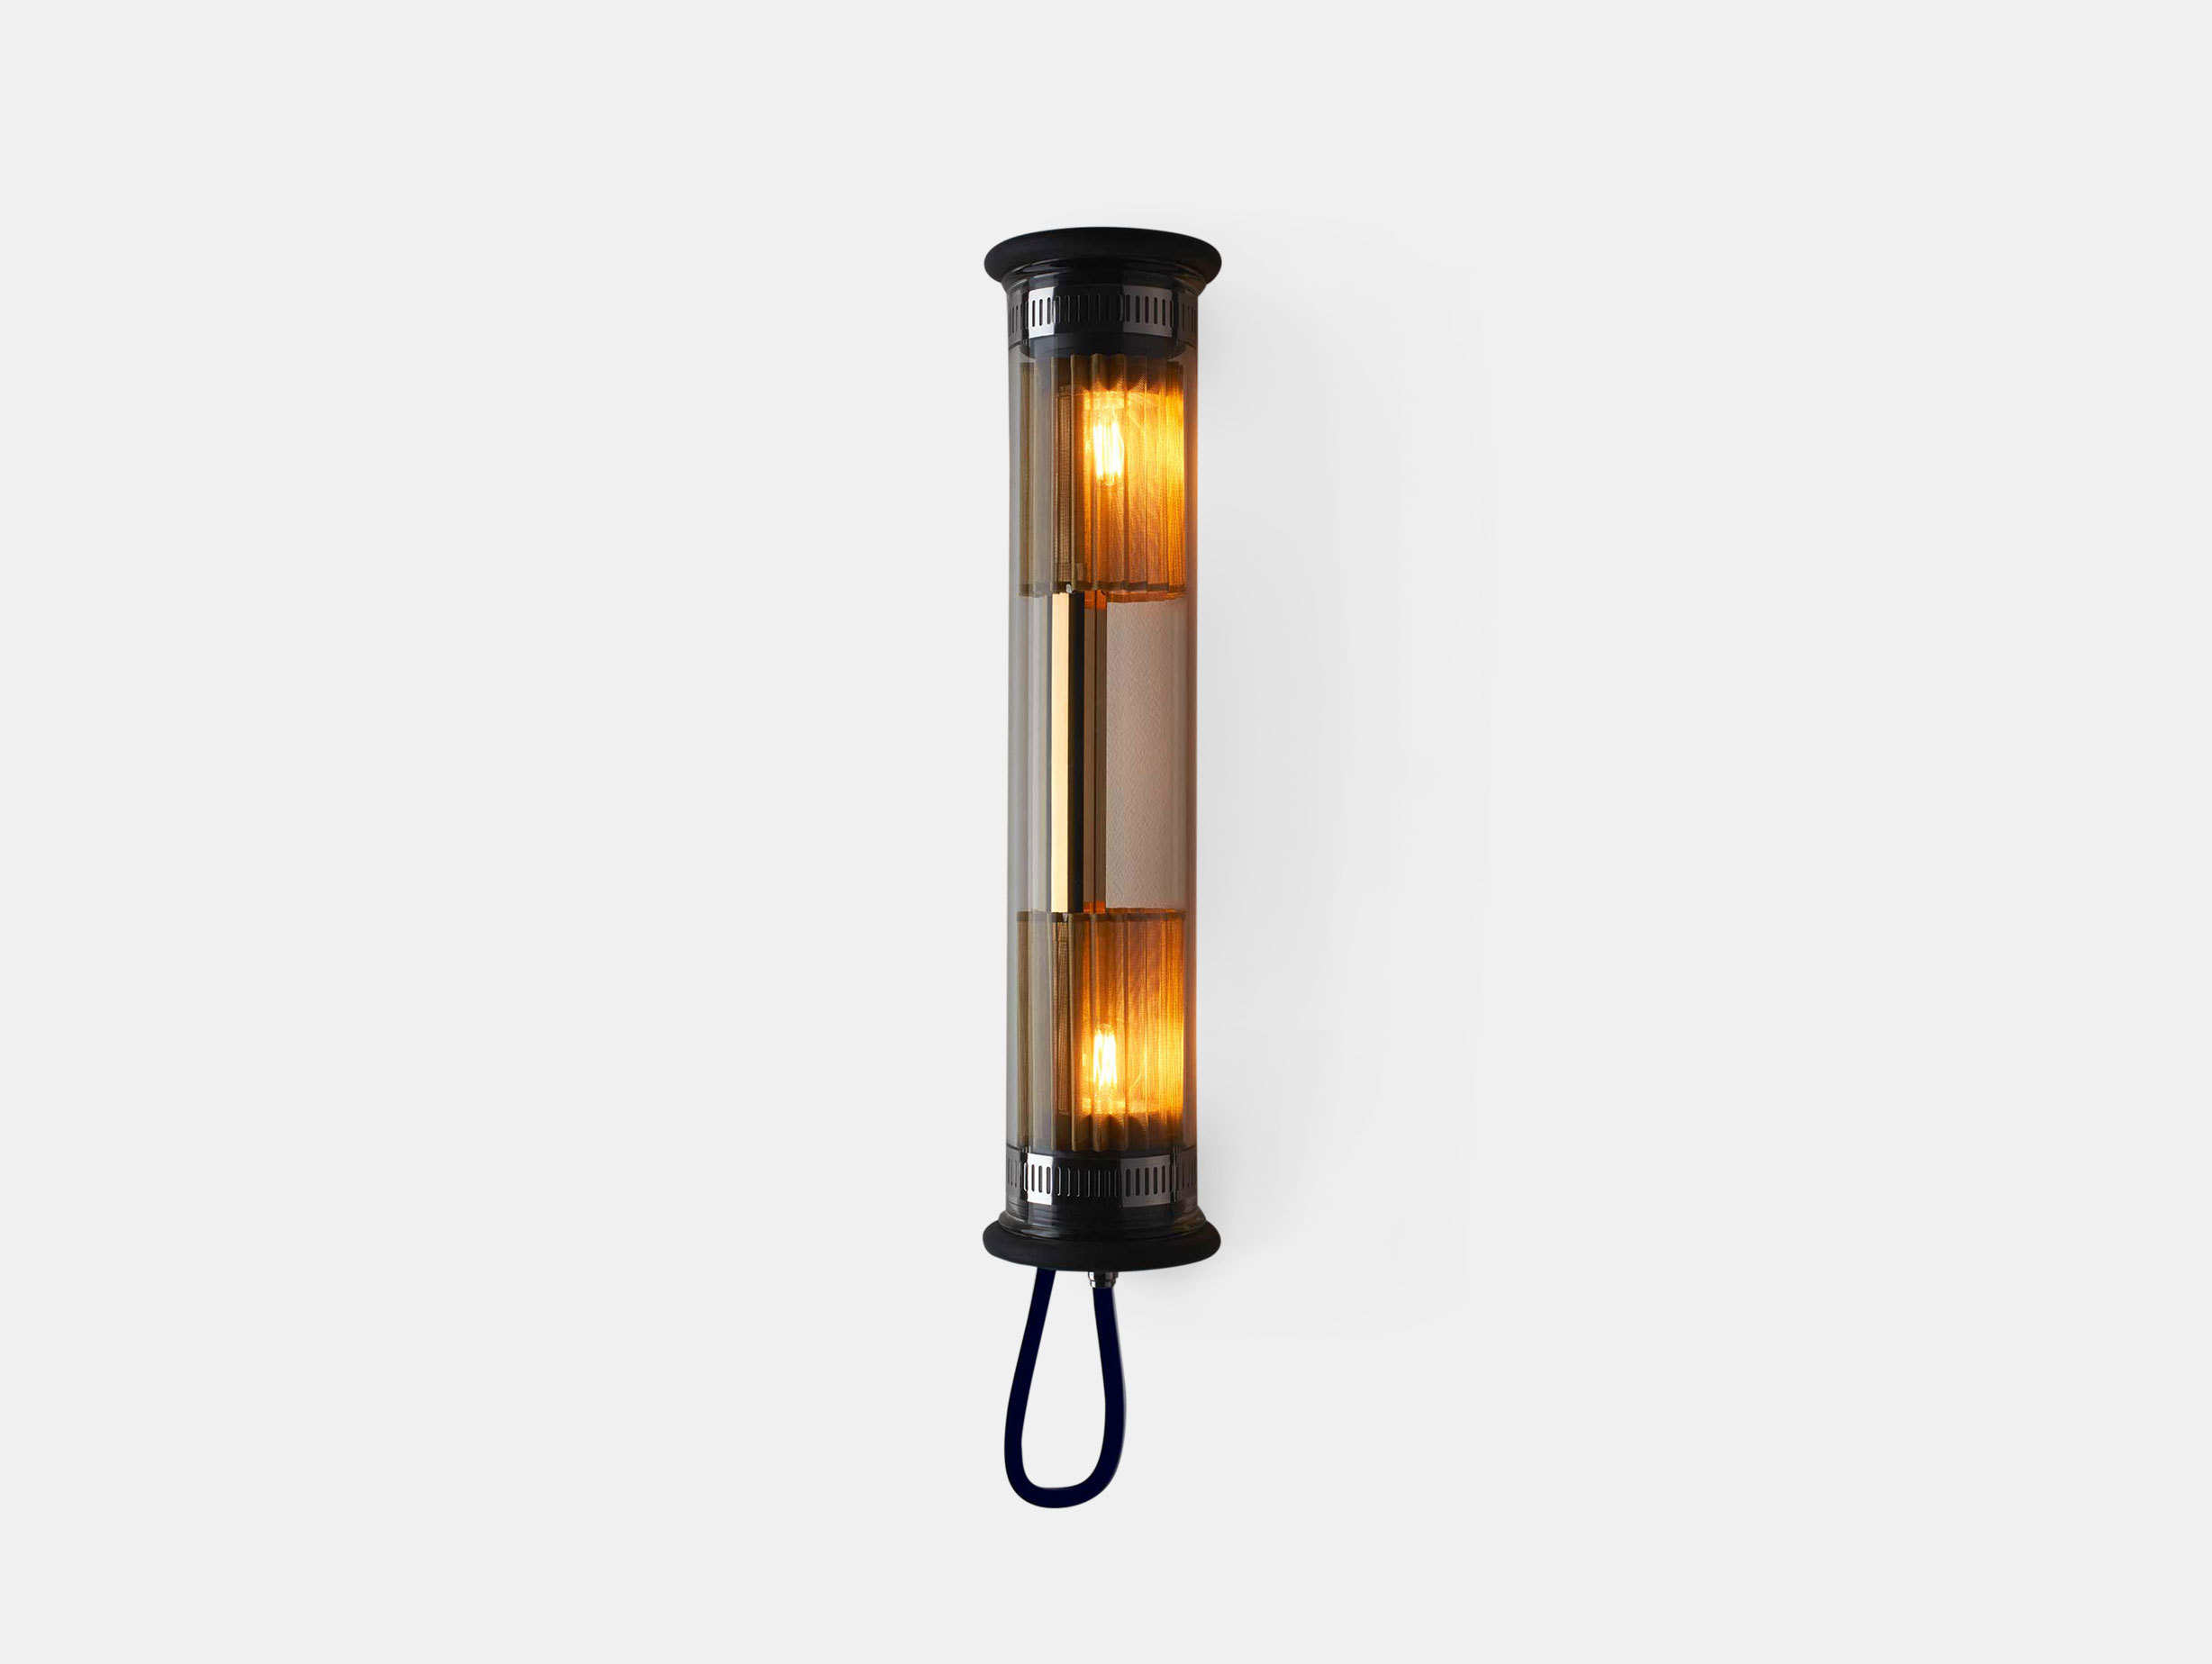 Lampe Gras In The Tube In The Tube 100 500 Wall Lamp Viaduct